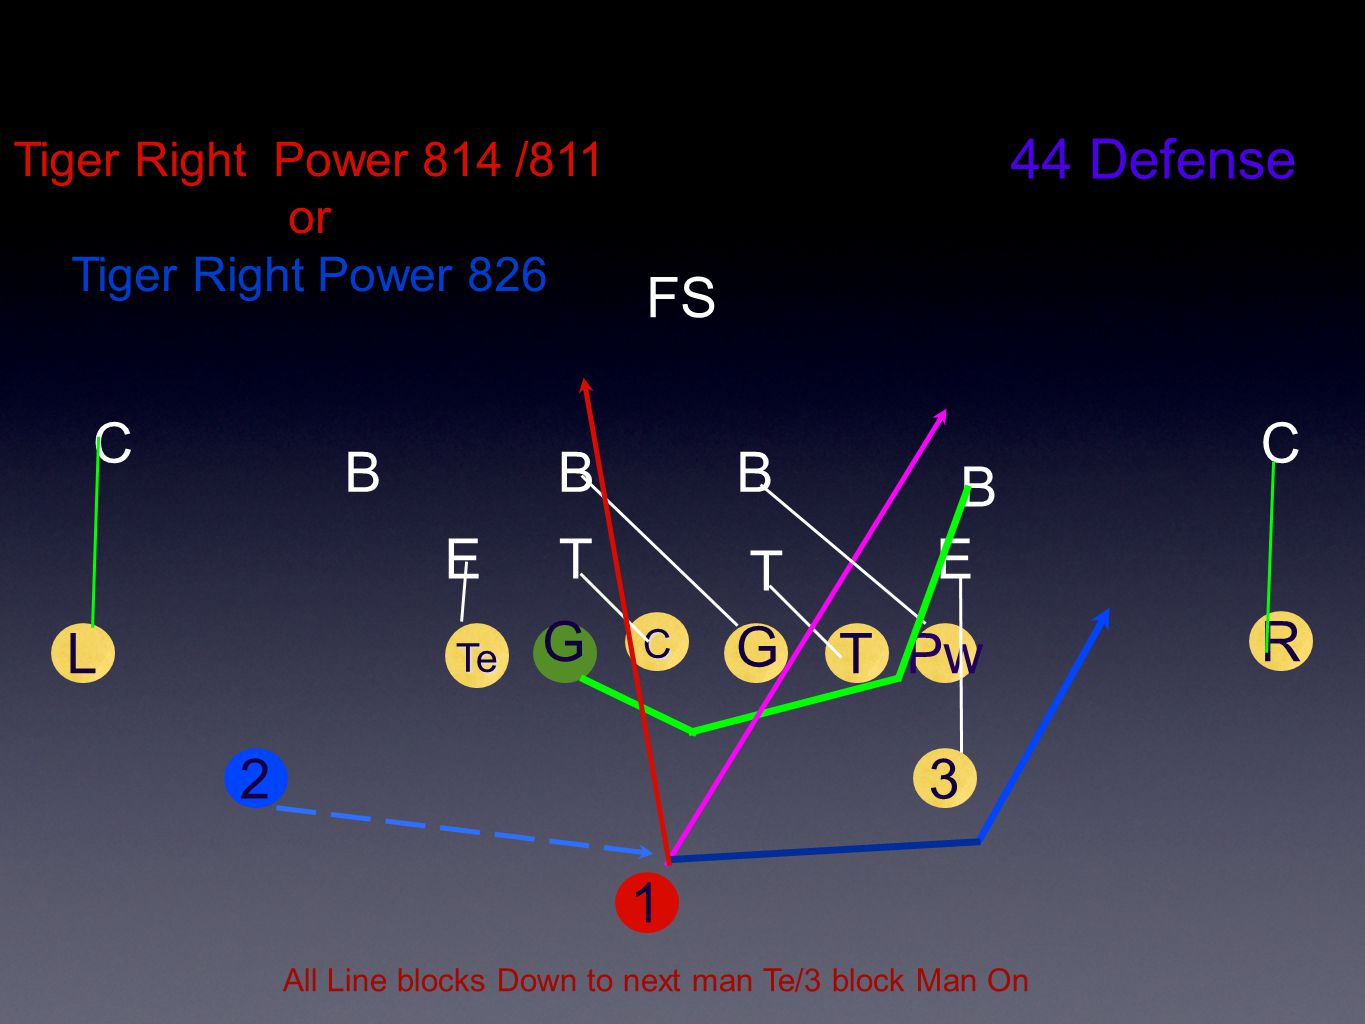 All Line blocks Down to next man Te/3 block Man On